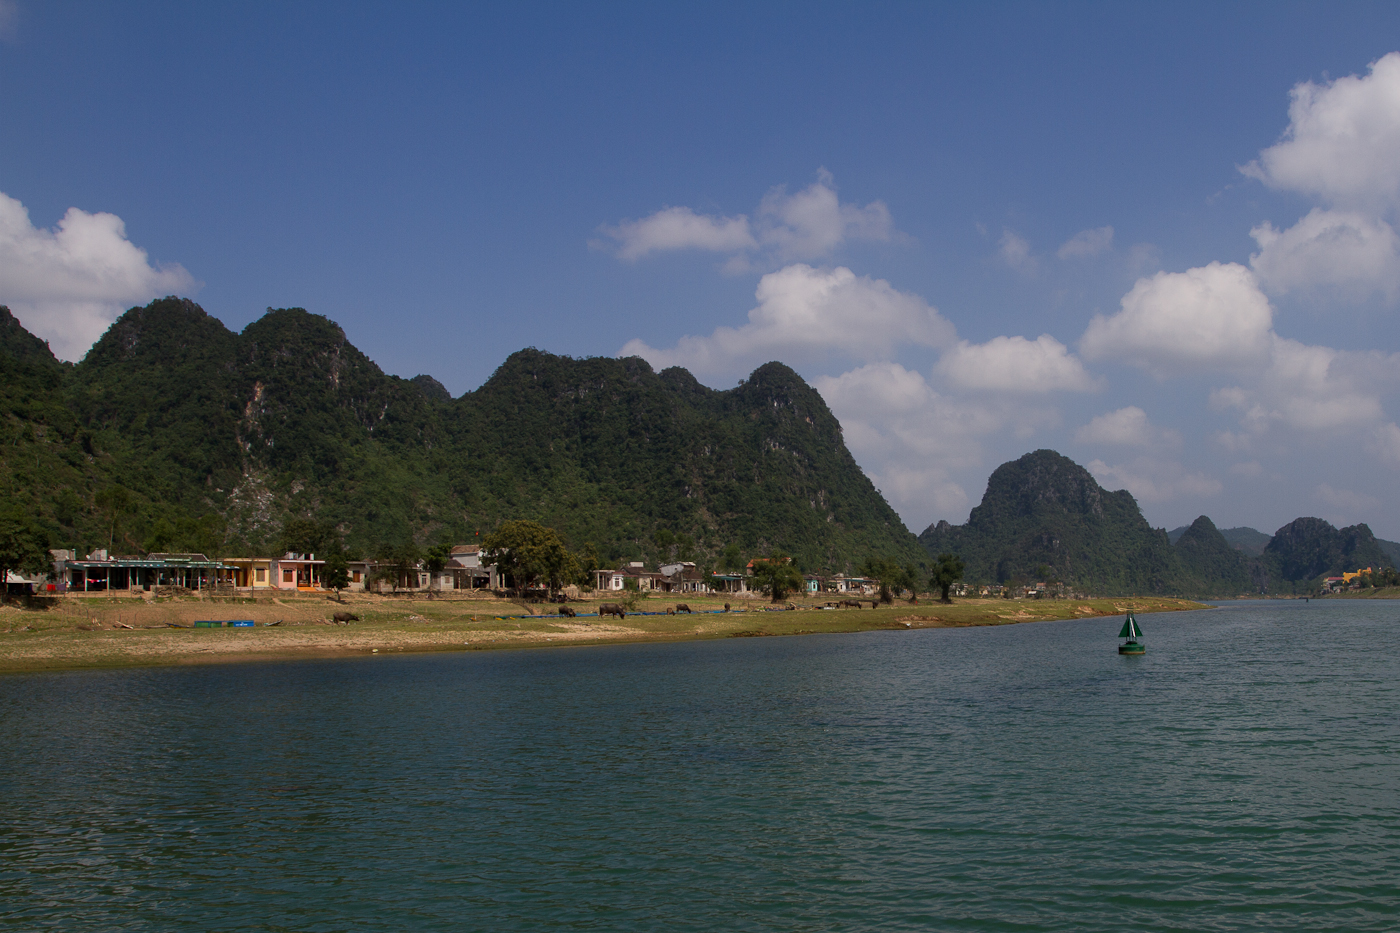 The Son River that runs through Phong Nha